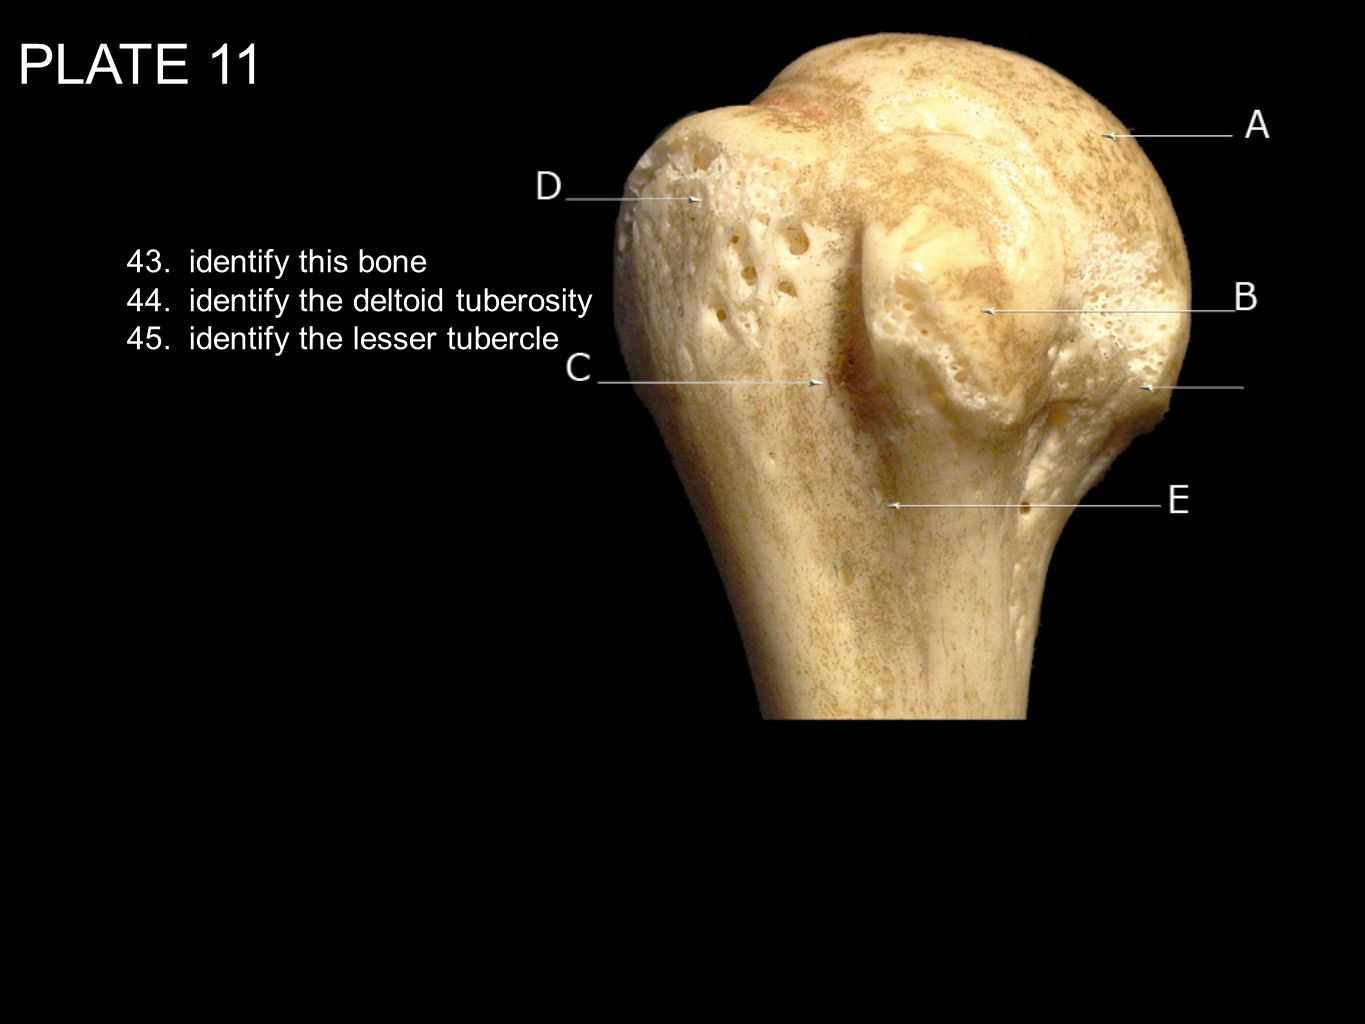 PLATE 11 43. identify this bone 44. identify the deltoid tuberosity